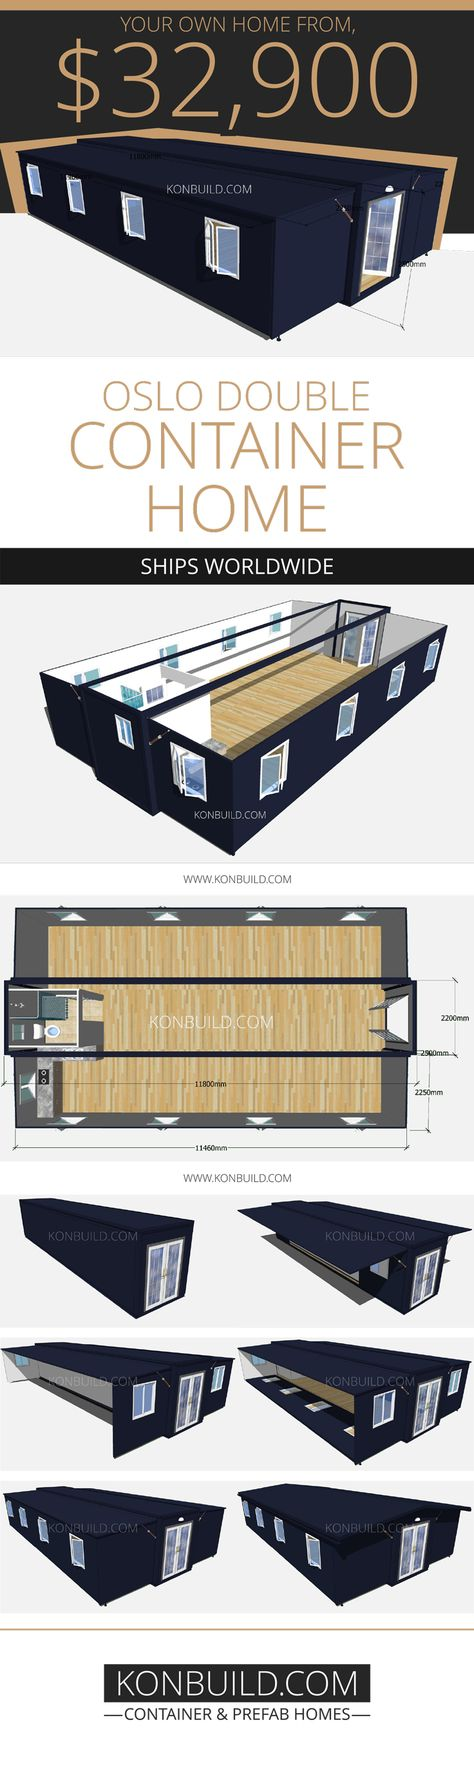 Expandable Shipping Container Home [$15,900]